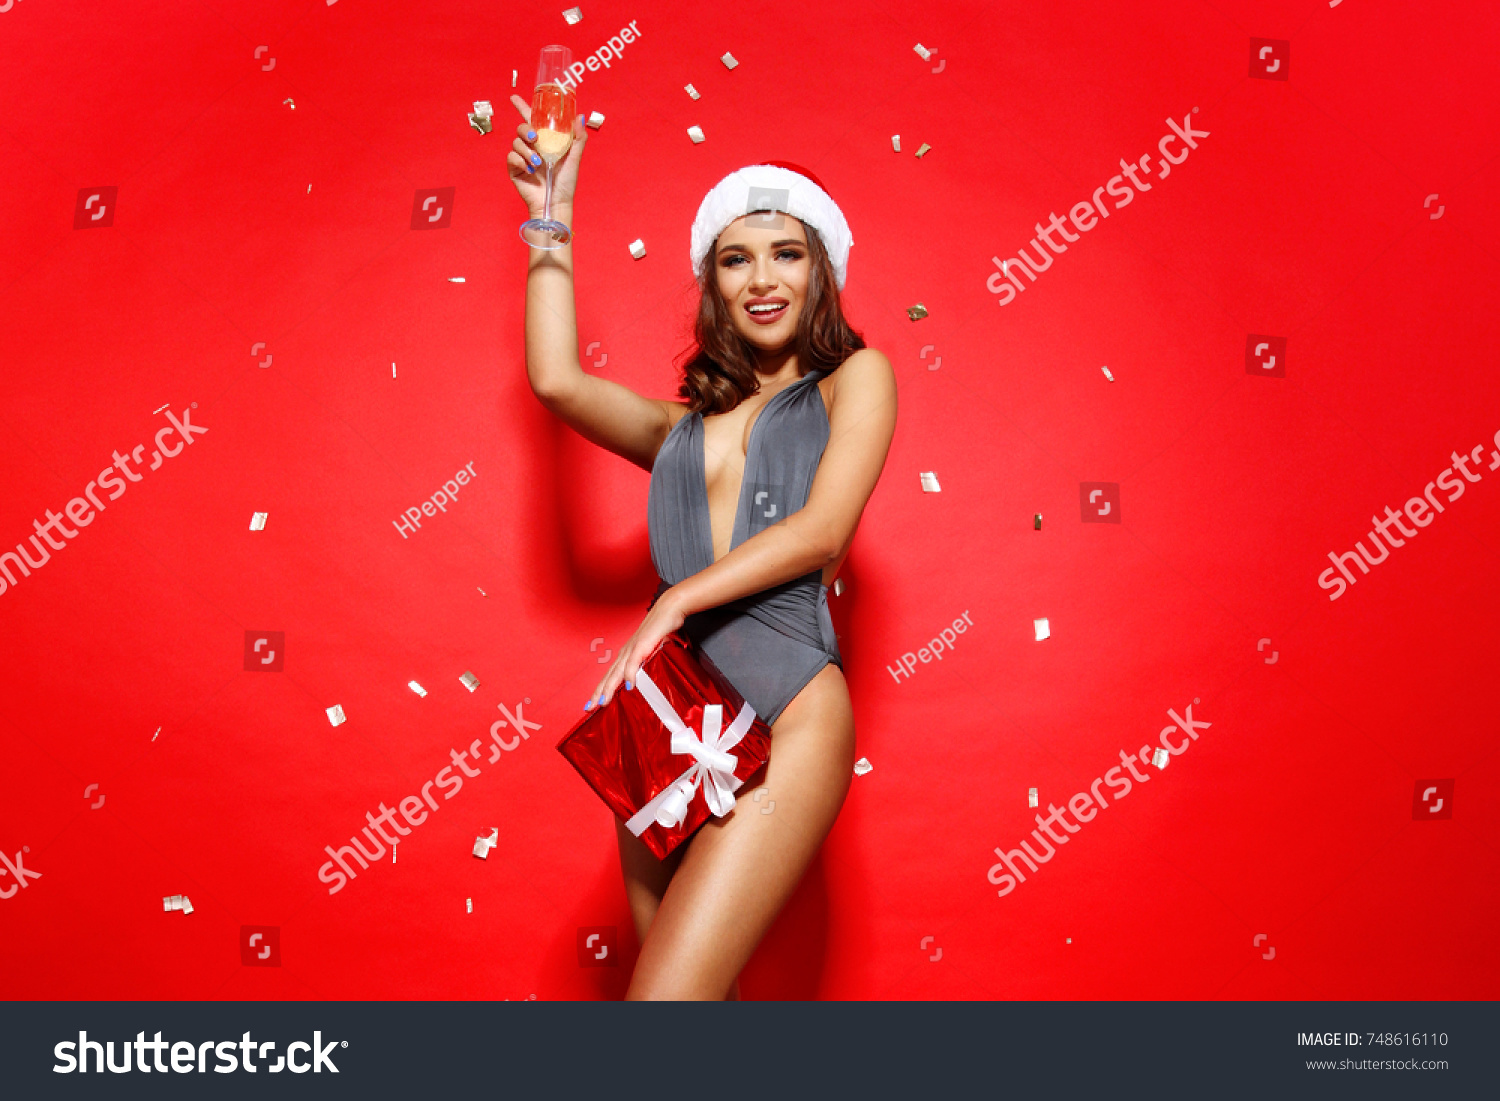 196cea35ef beautiful young girl model stands on red background in sexy bathing suit  bikini and a Christmas